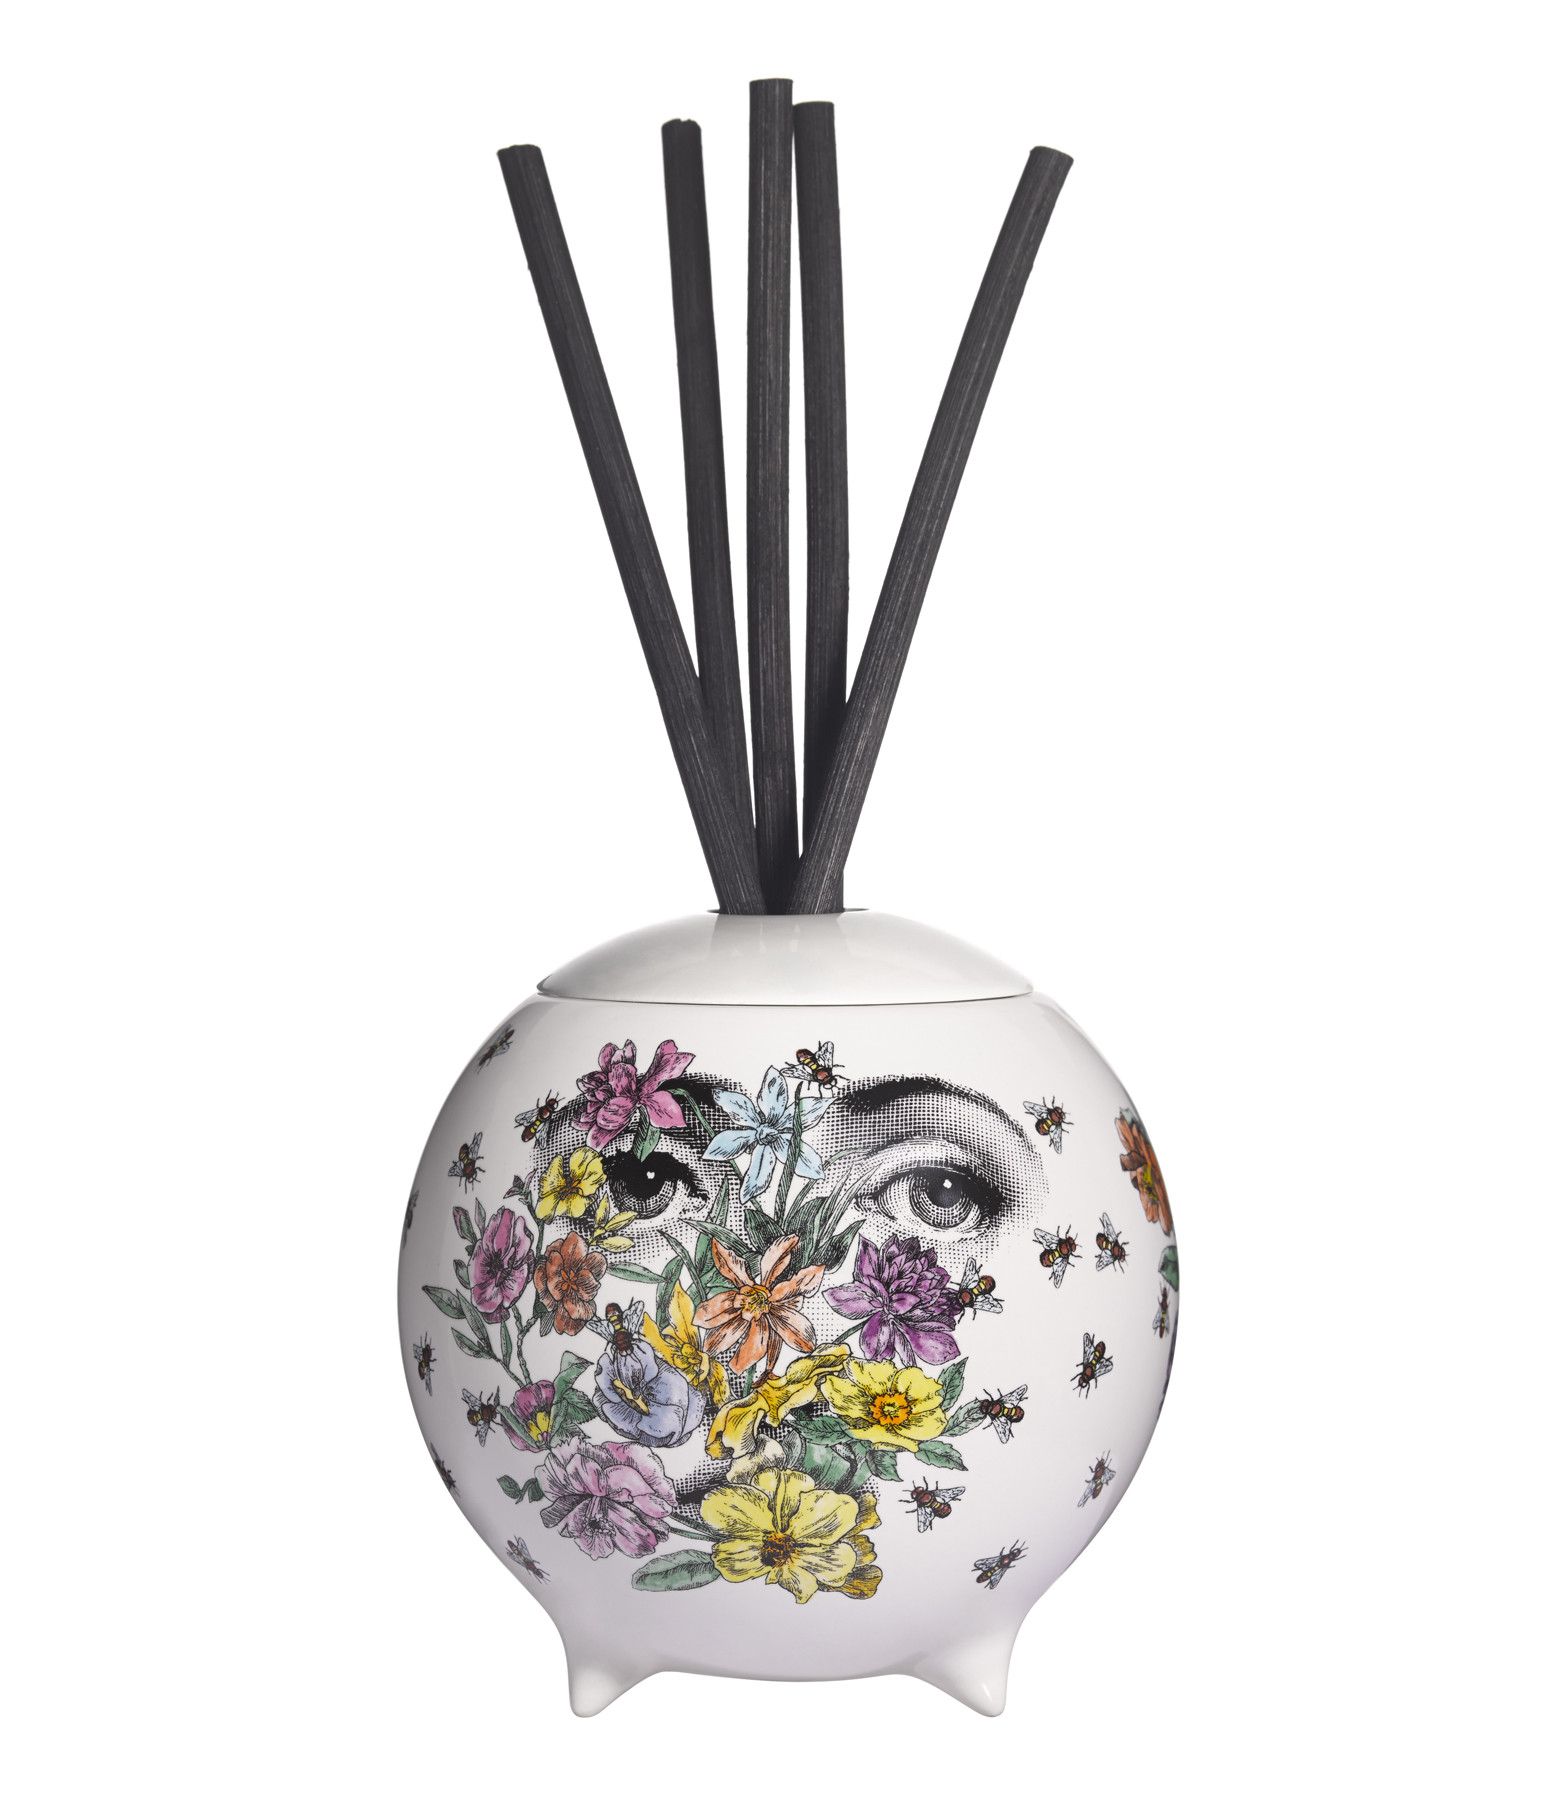 sph re diffuseur parfum 500ml flora fornasetti. Black Bedroom Furniture Sets. Home Design Ideas